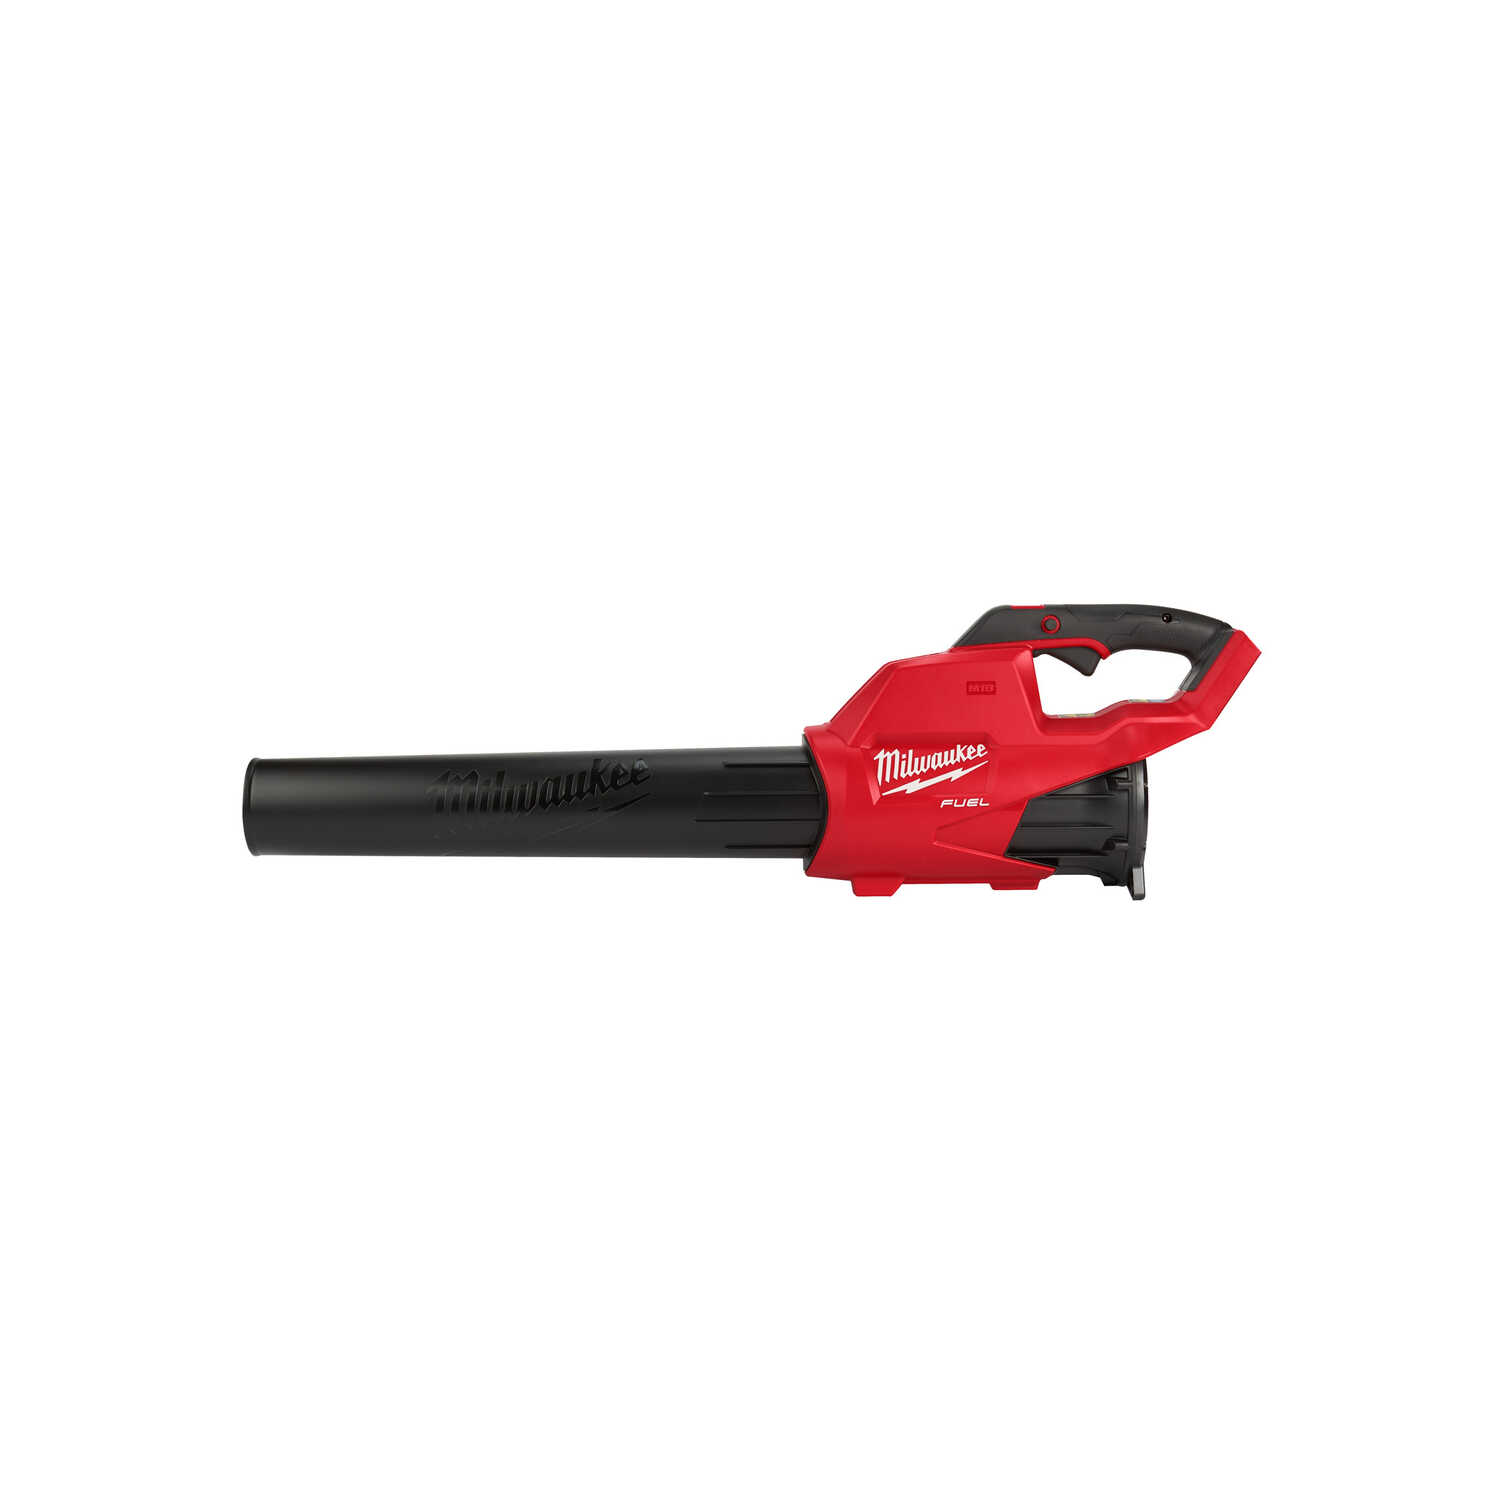 Milwaukee  M18 FUEL  Battery  Handheld  Leaf Blower